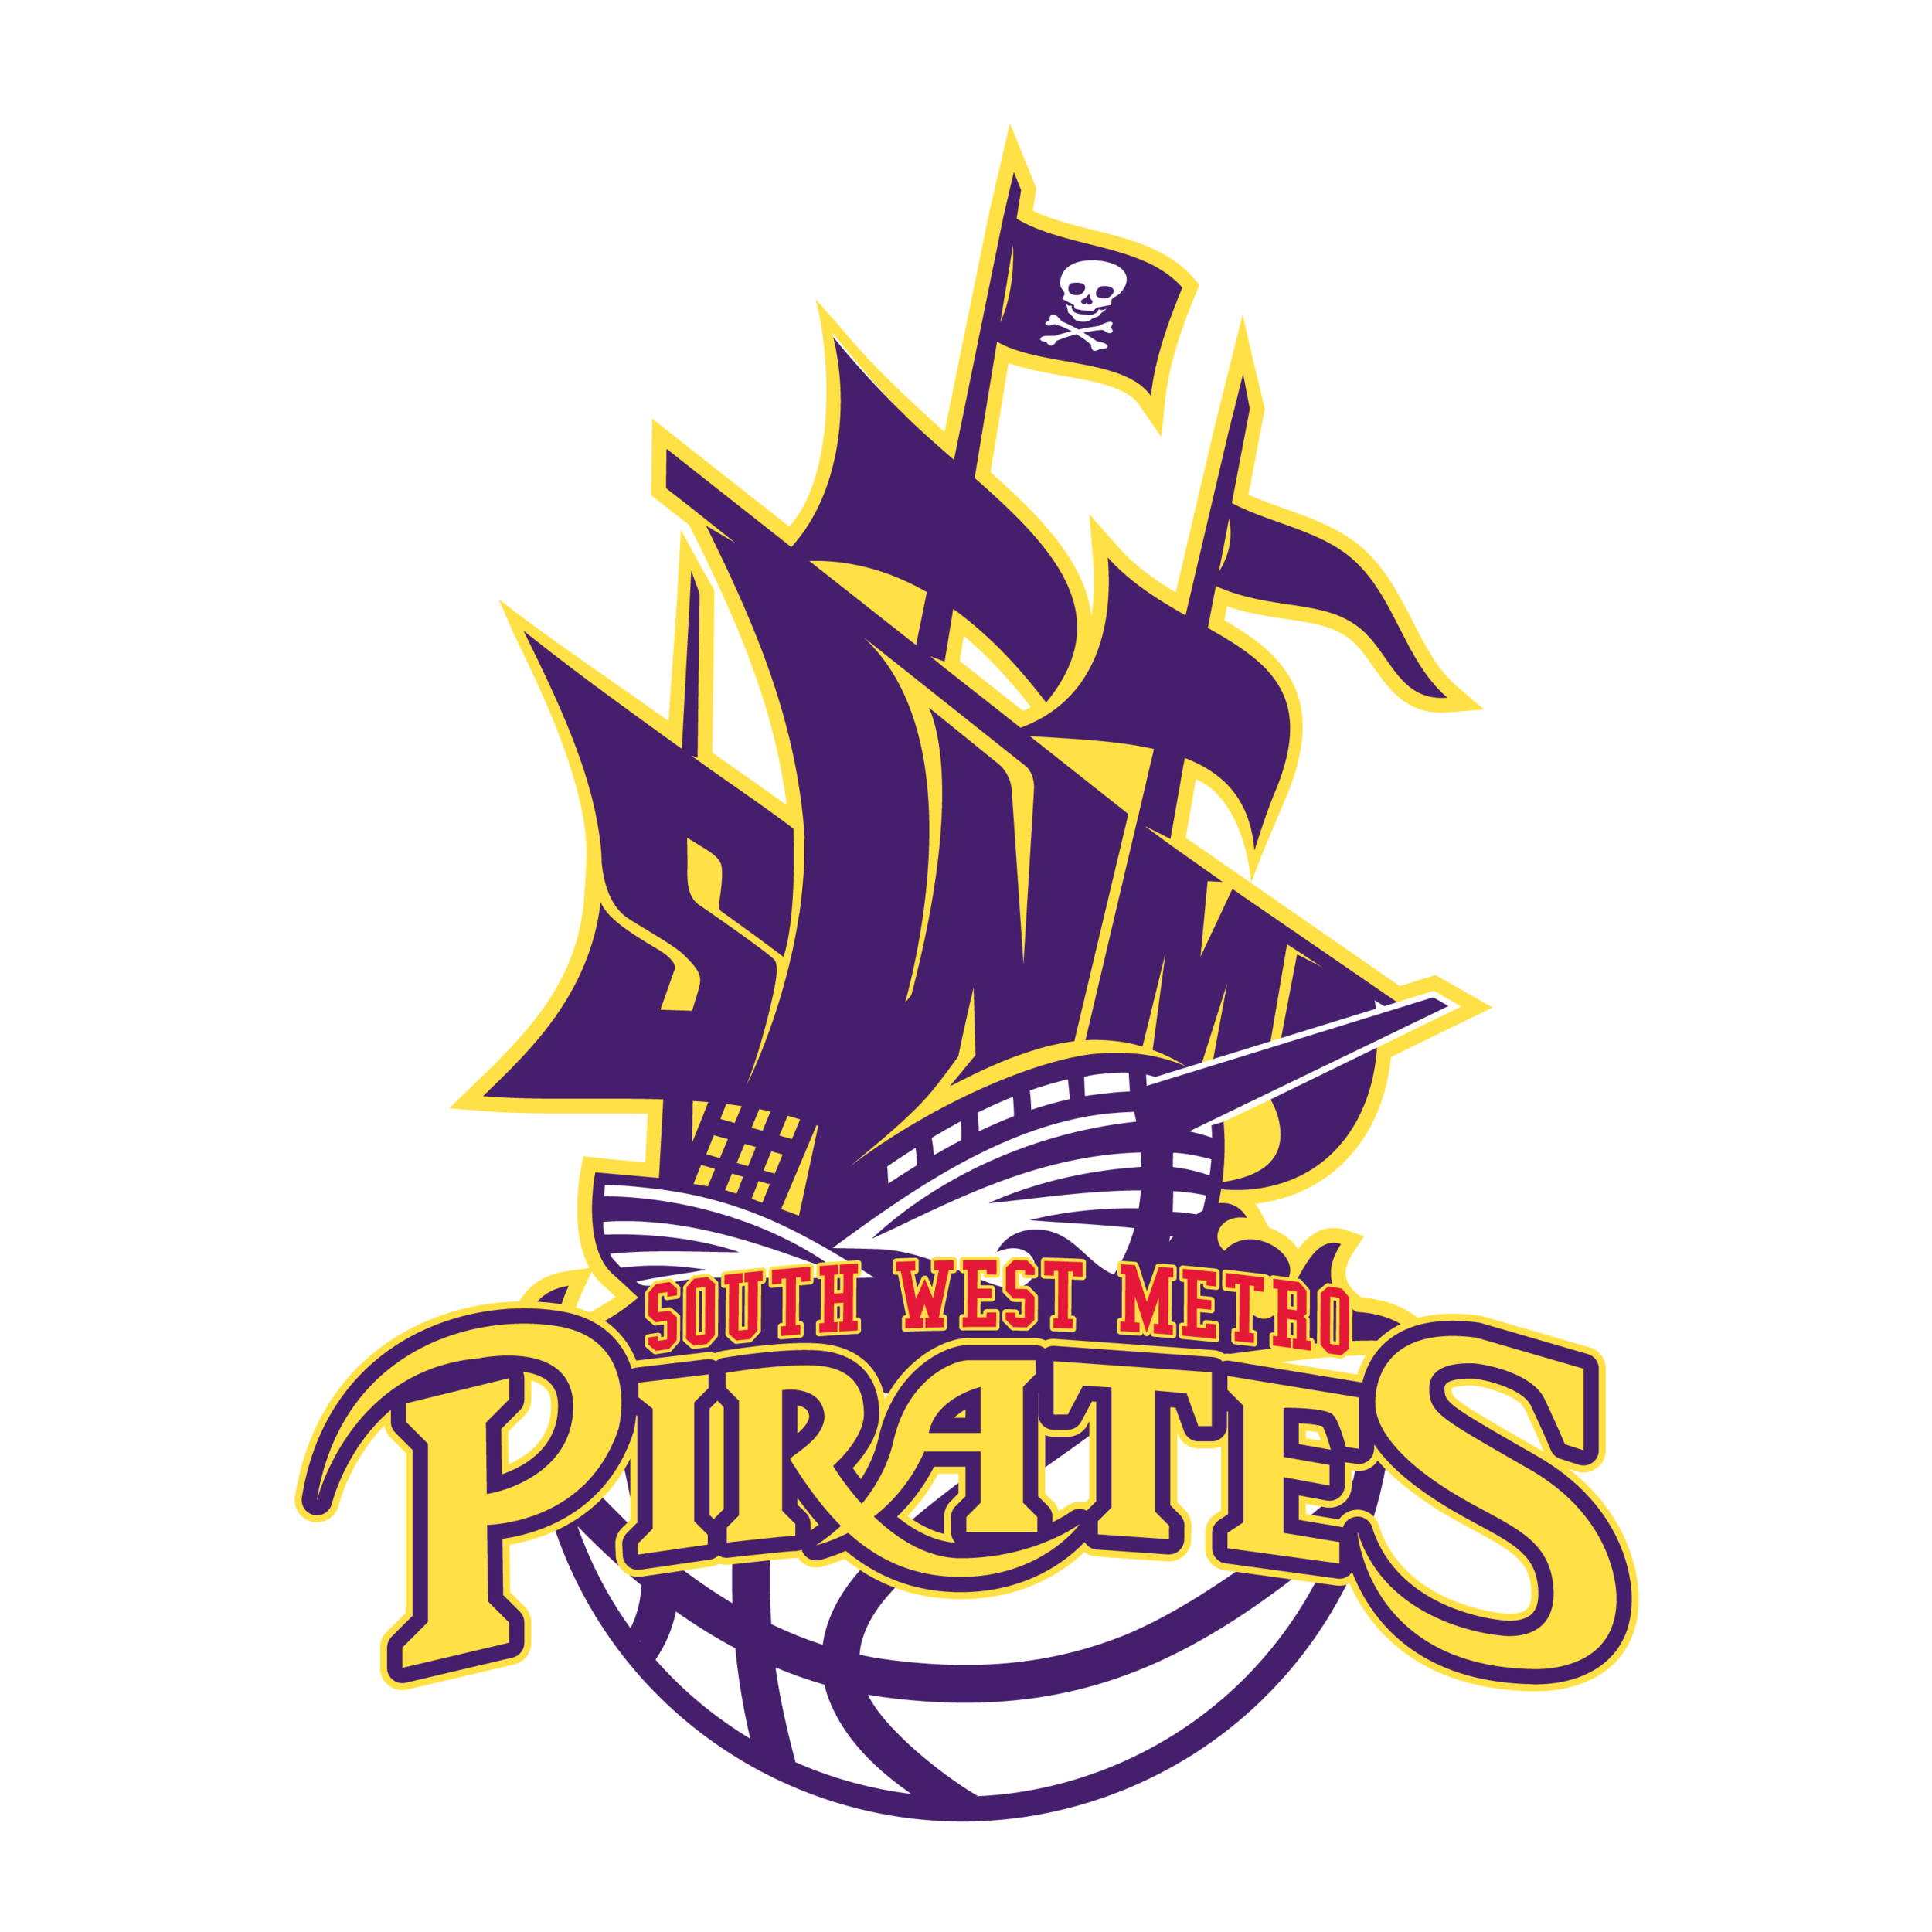 SWM_Pirates_NewLogo_High-Res_PNG.png